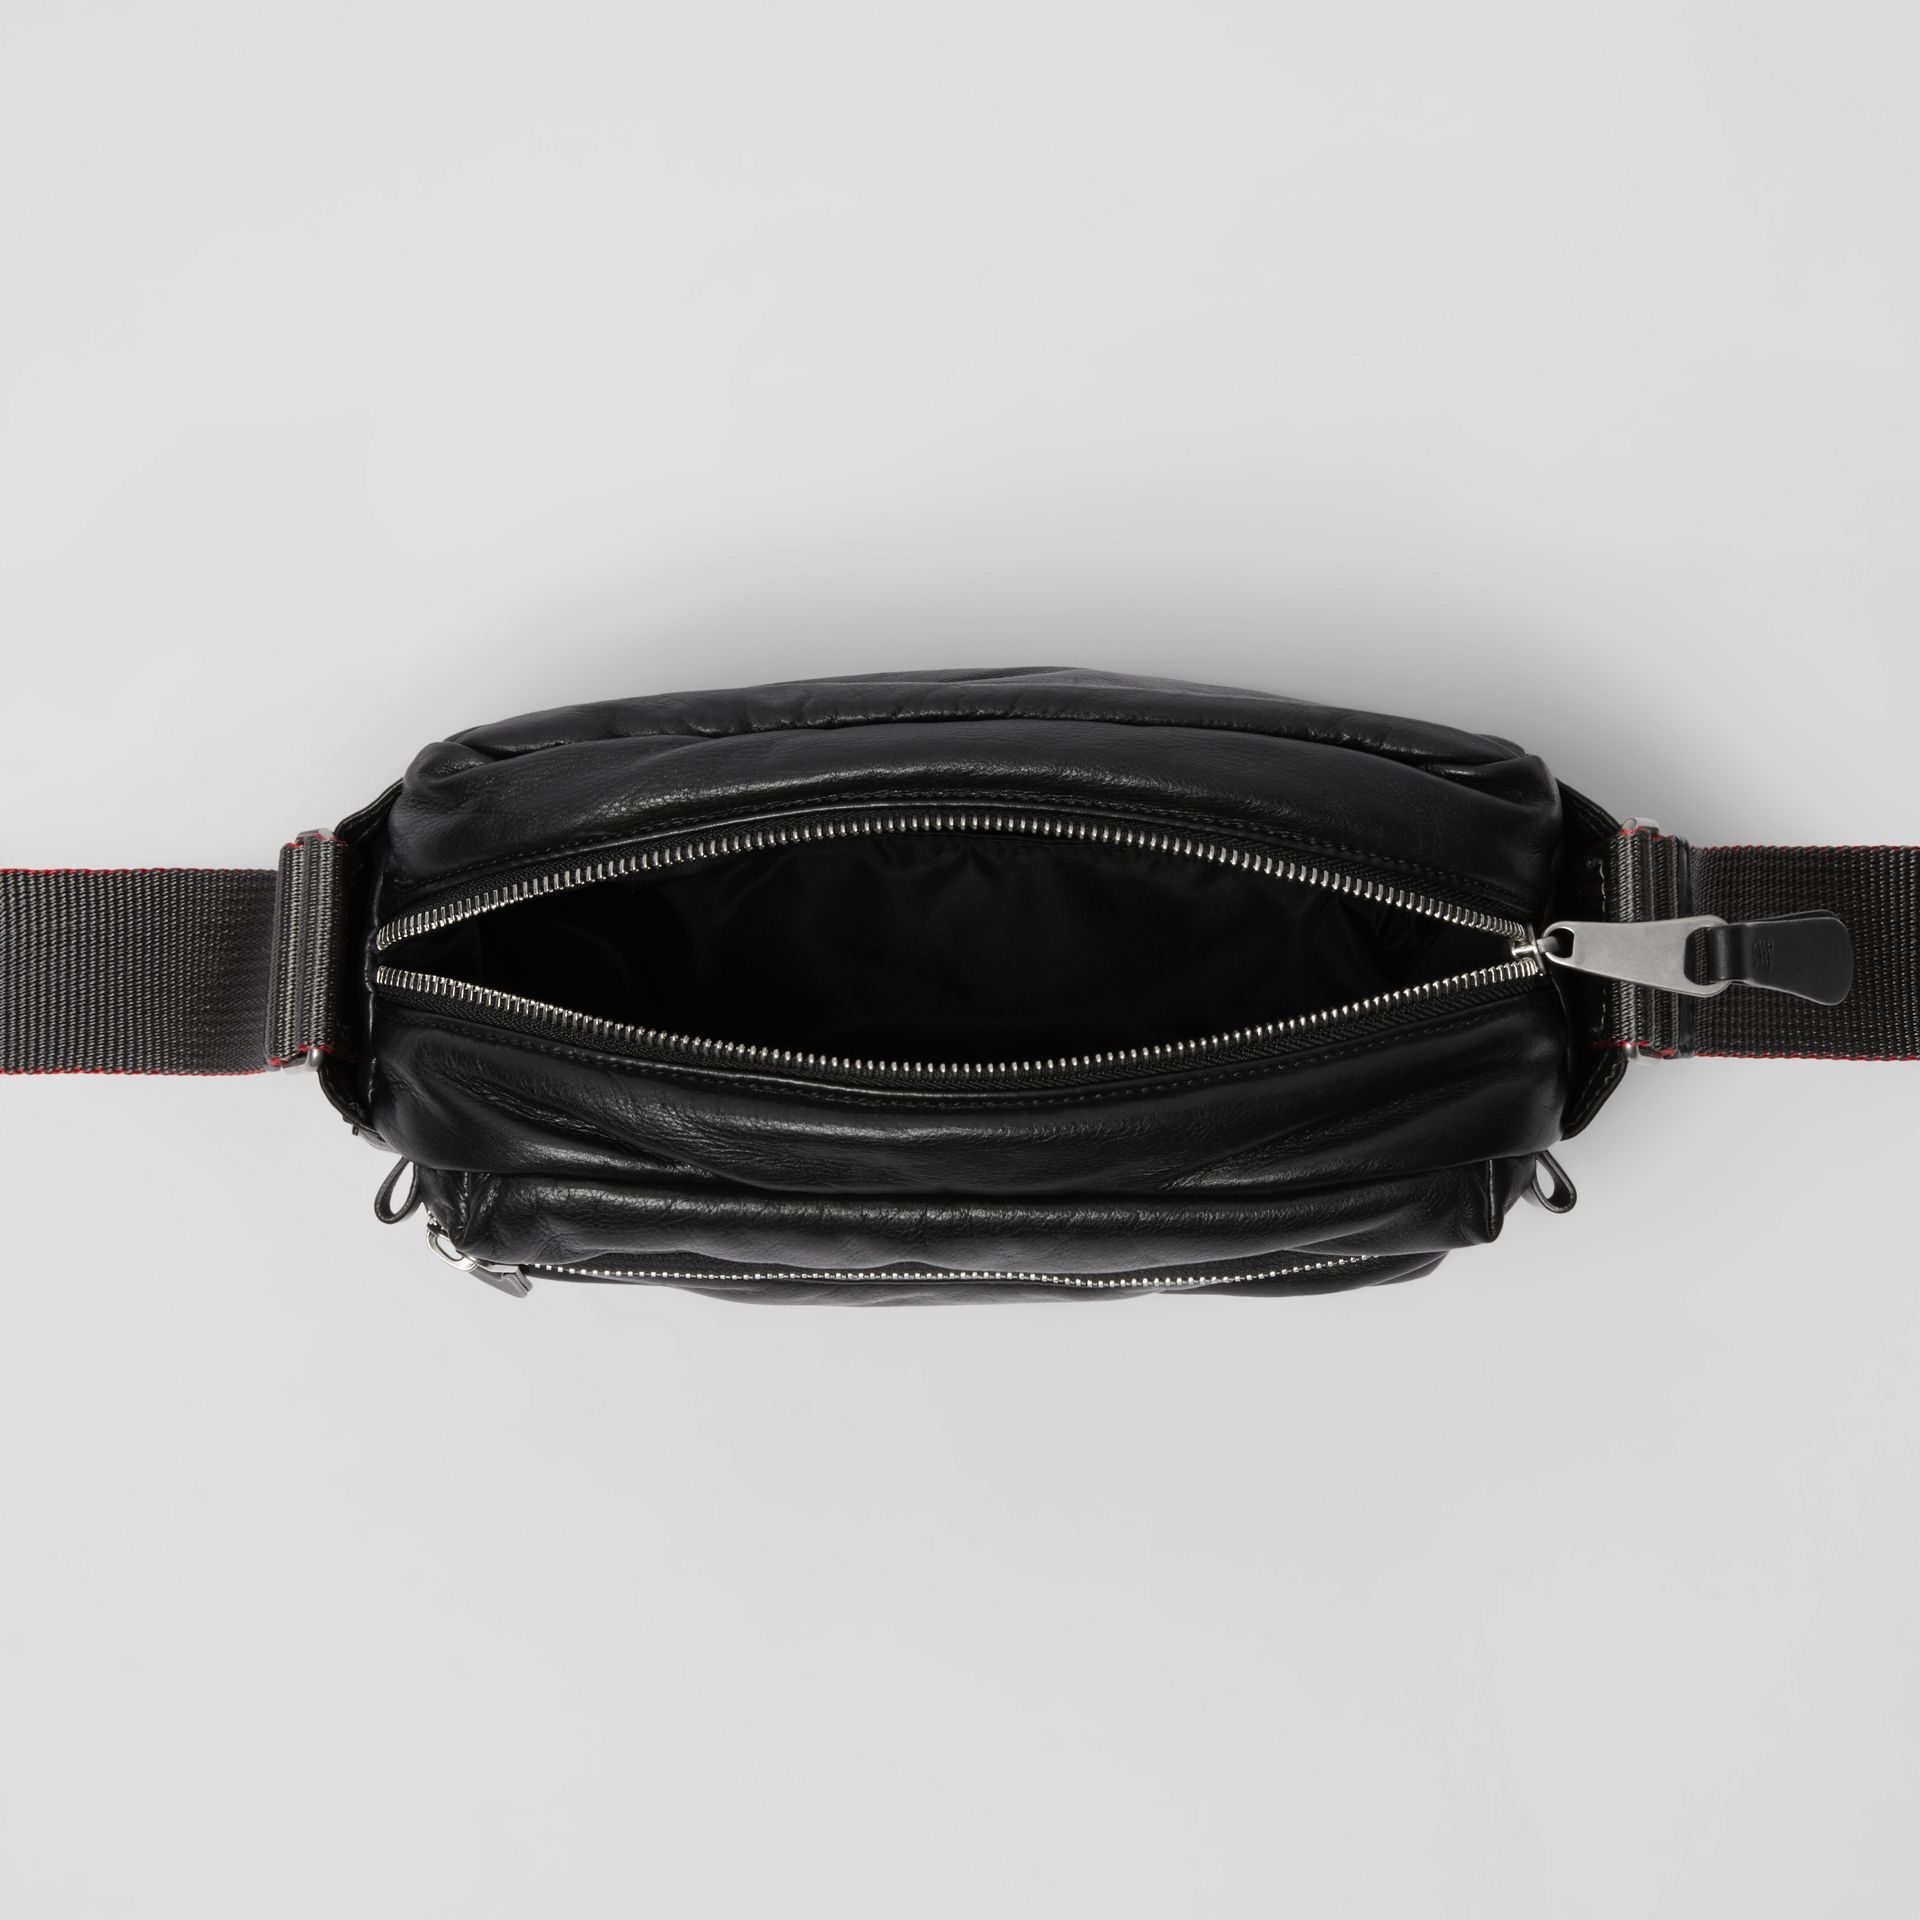 EKD Nappa Leather Crossbody Bag in Black - Men | Burberry - gallery image 3